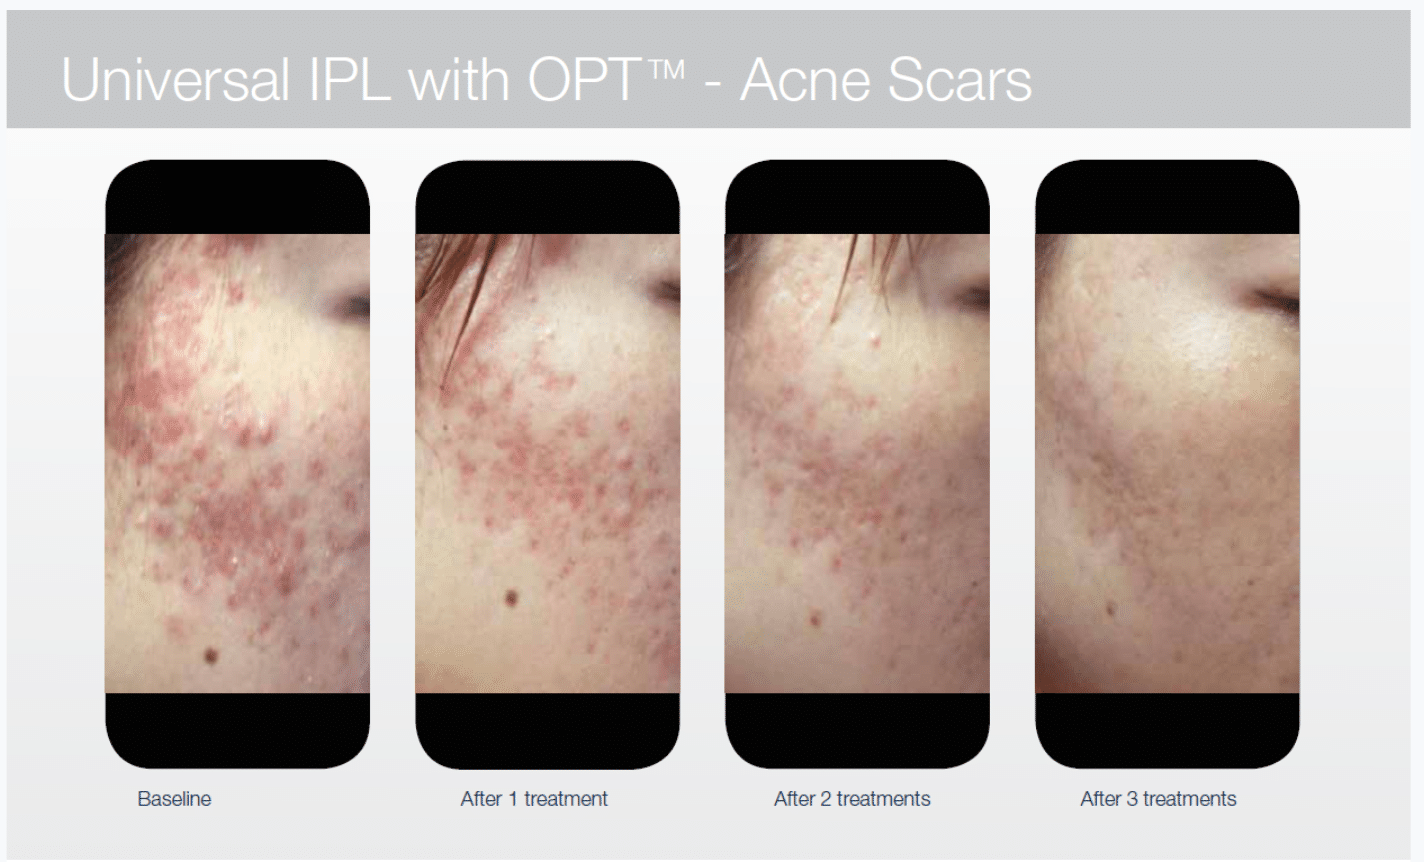 acne scars treatment using Ipl before and after images